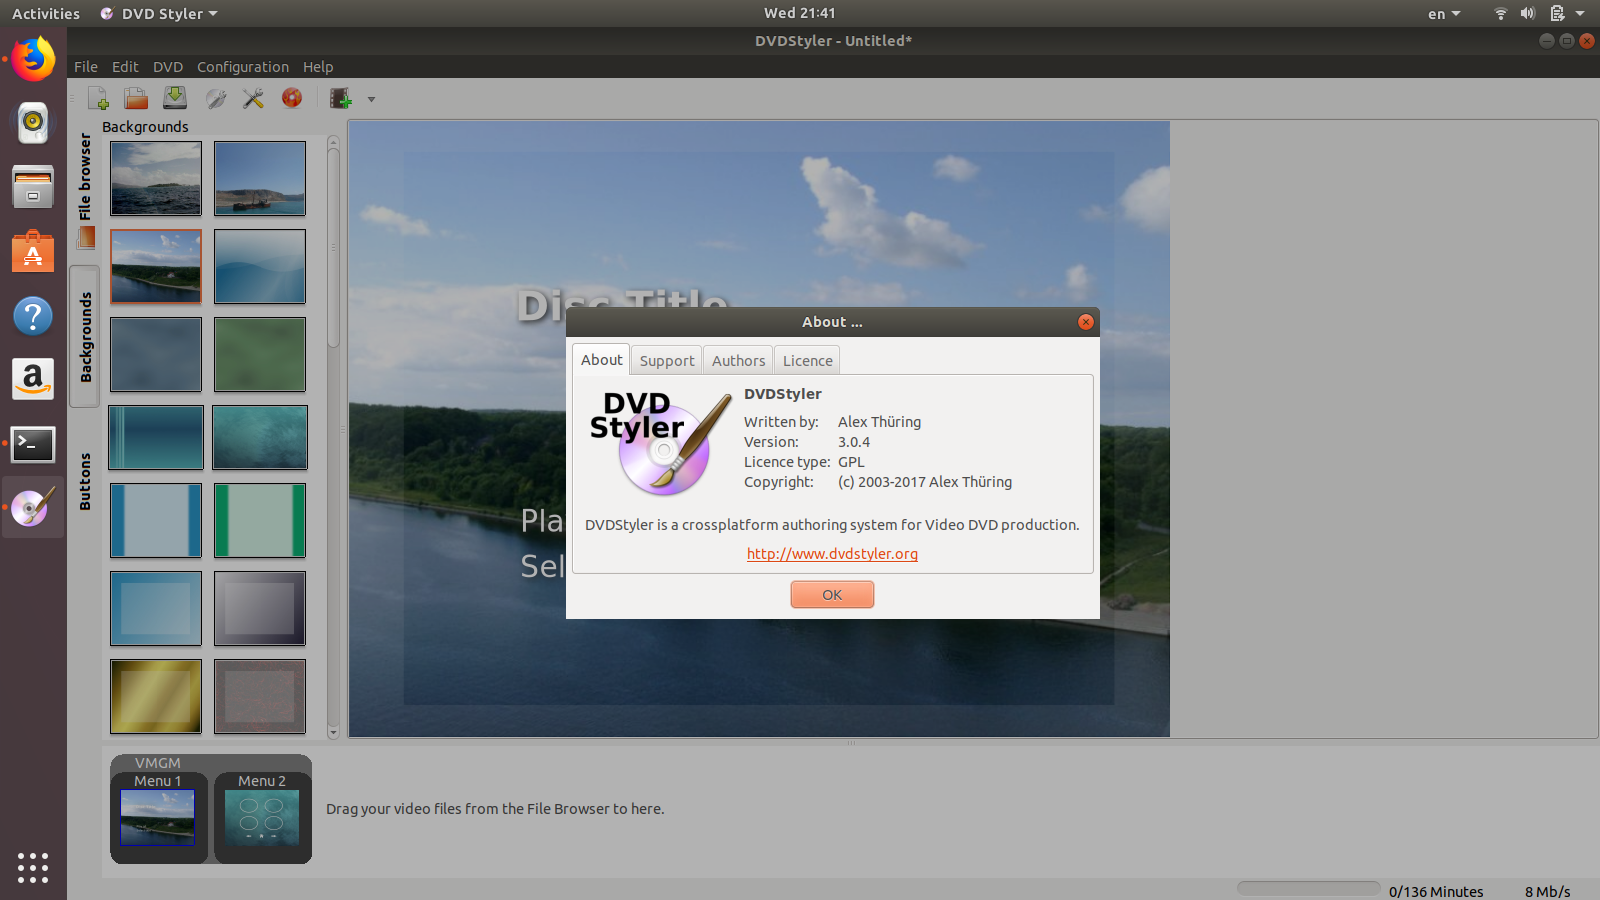 How to install program on Ubuntu: How to install DVDStyler 3 0 4 on